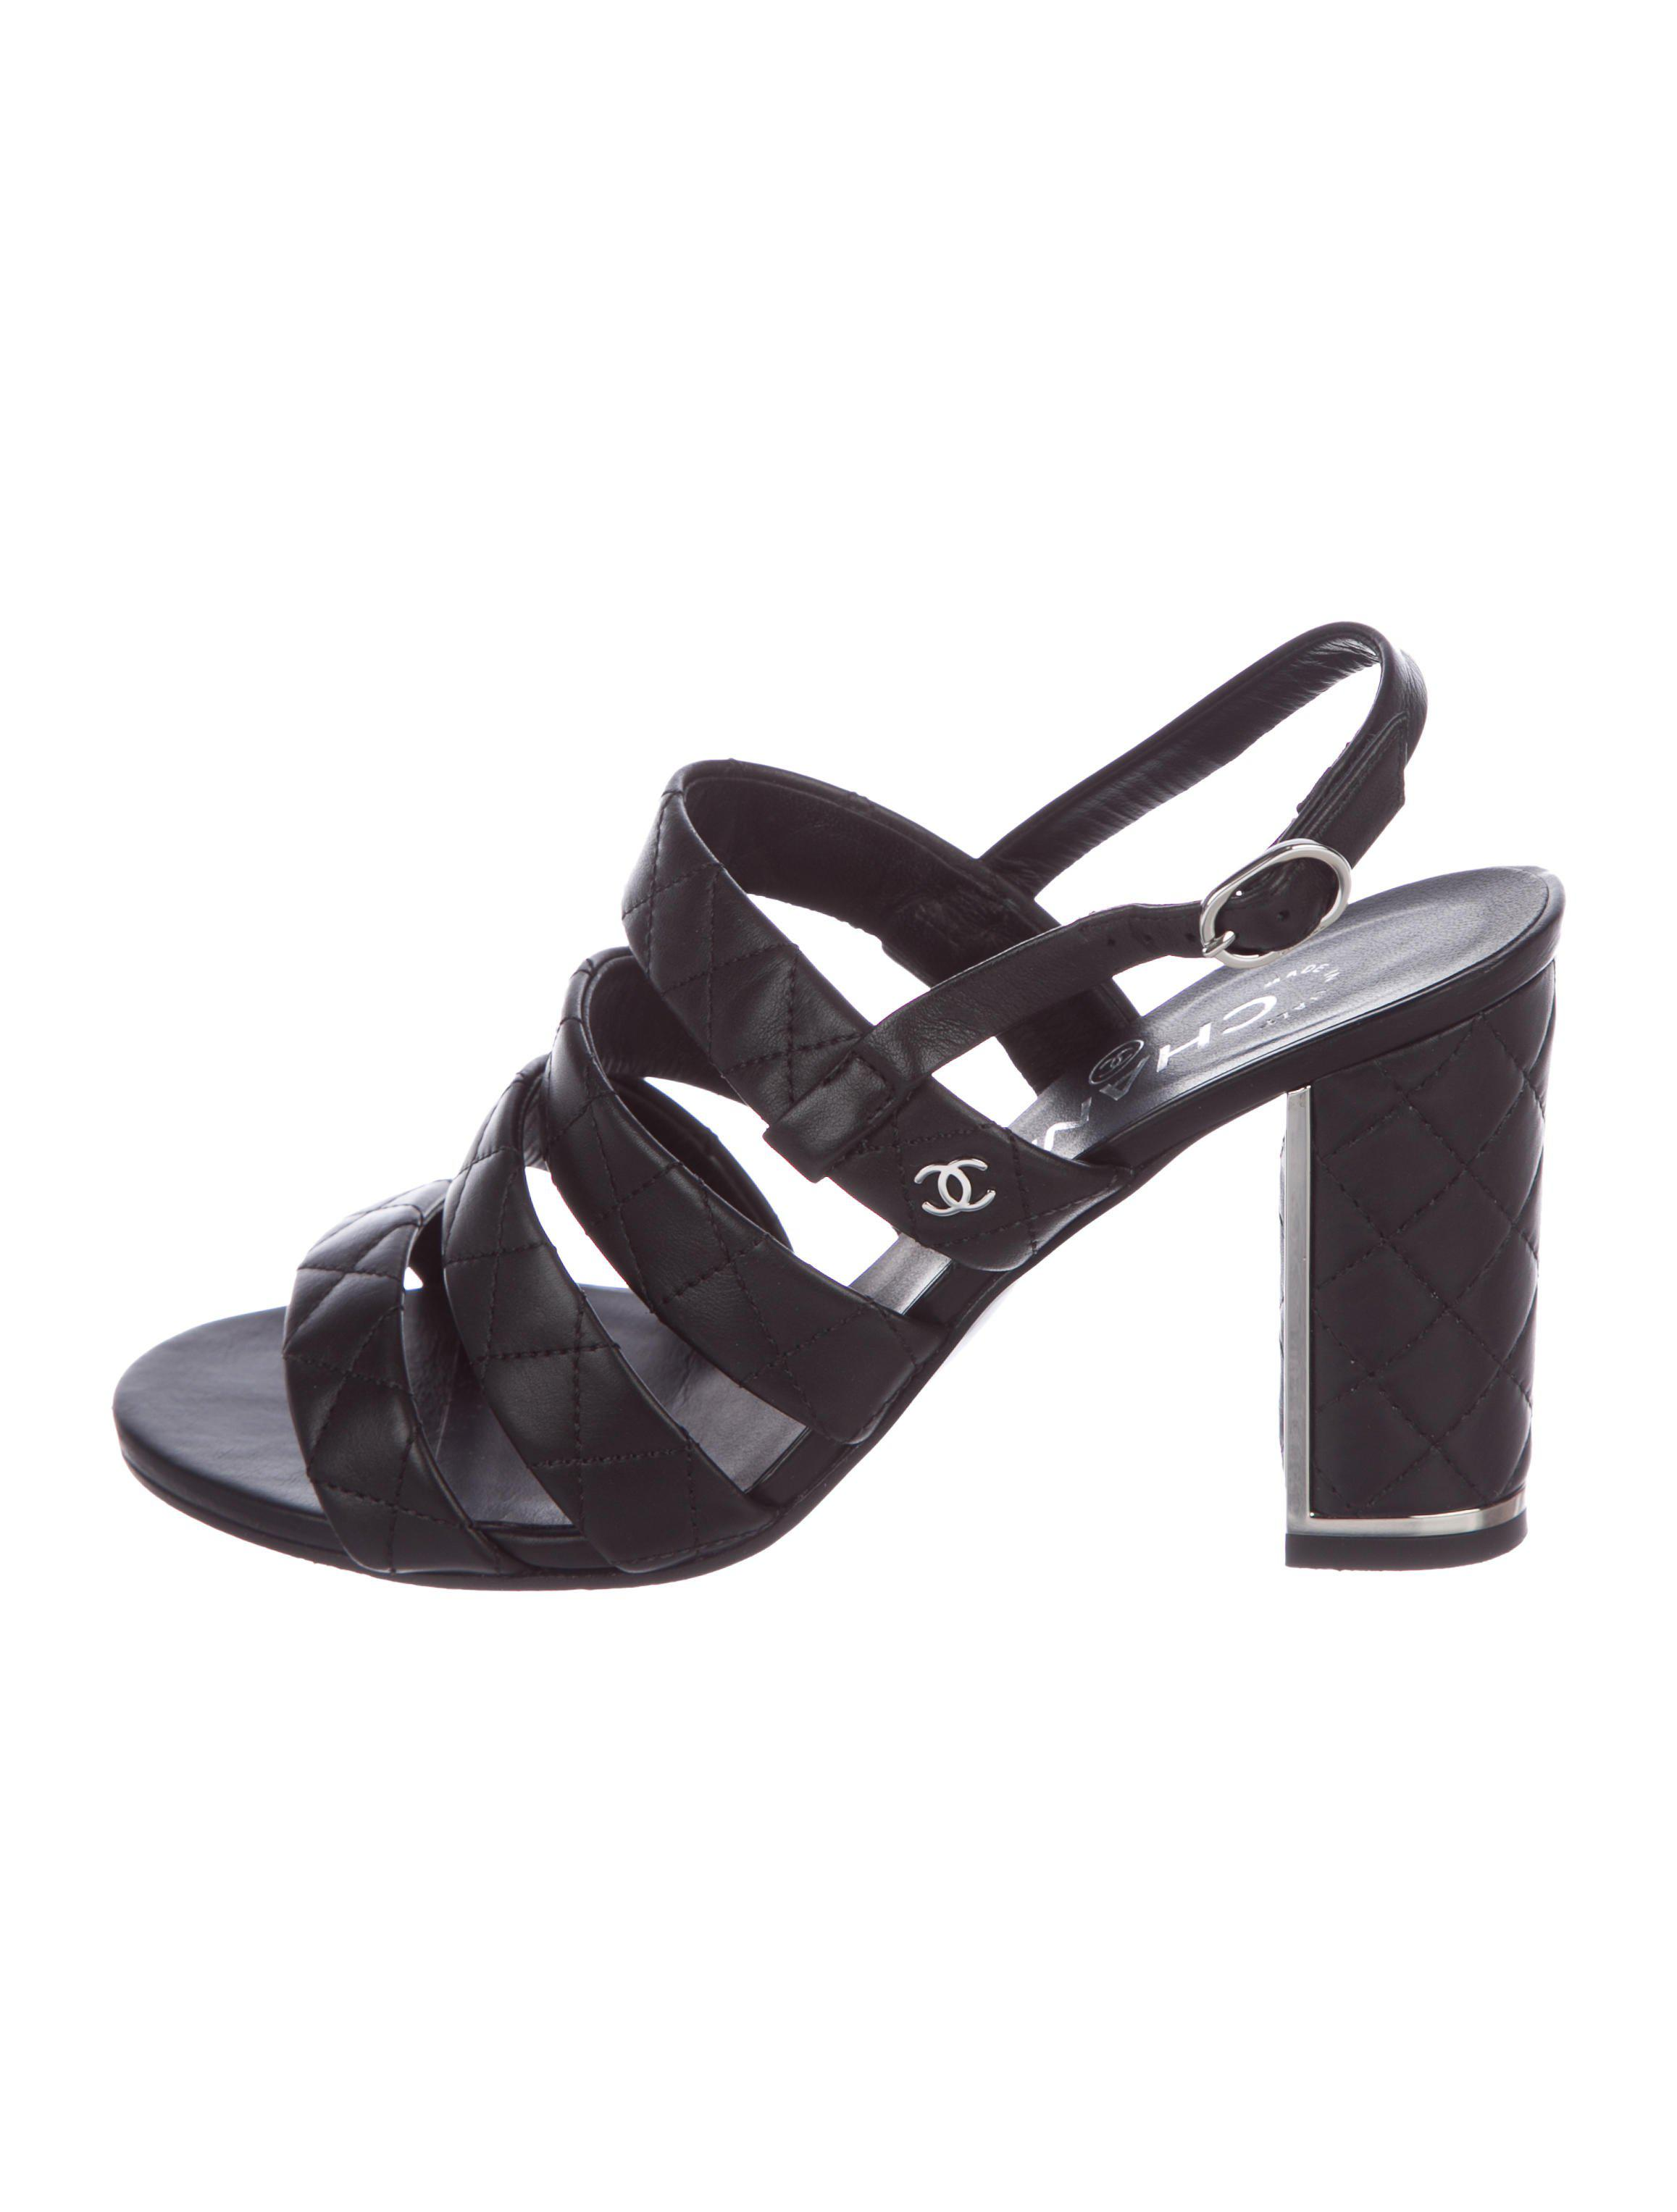 e36efa2acae1 Lyst - Chanel 2016 Quilted Sandals Black in Metallic